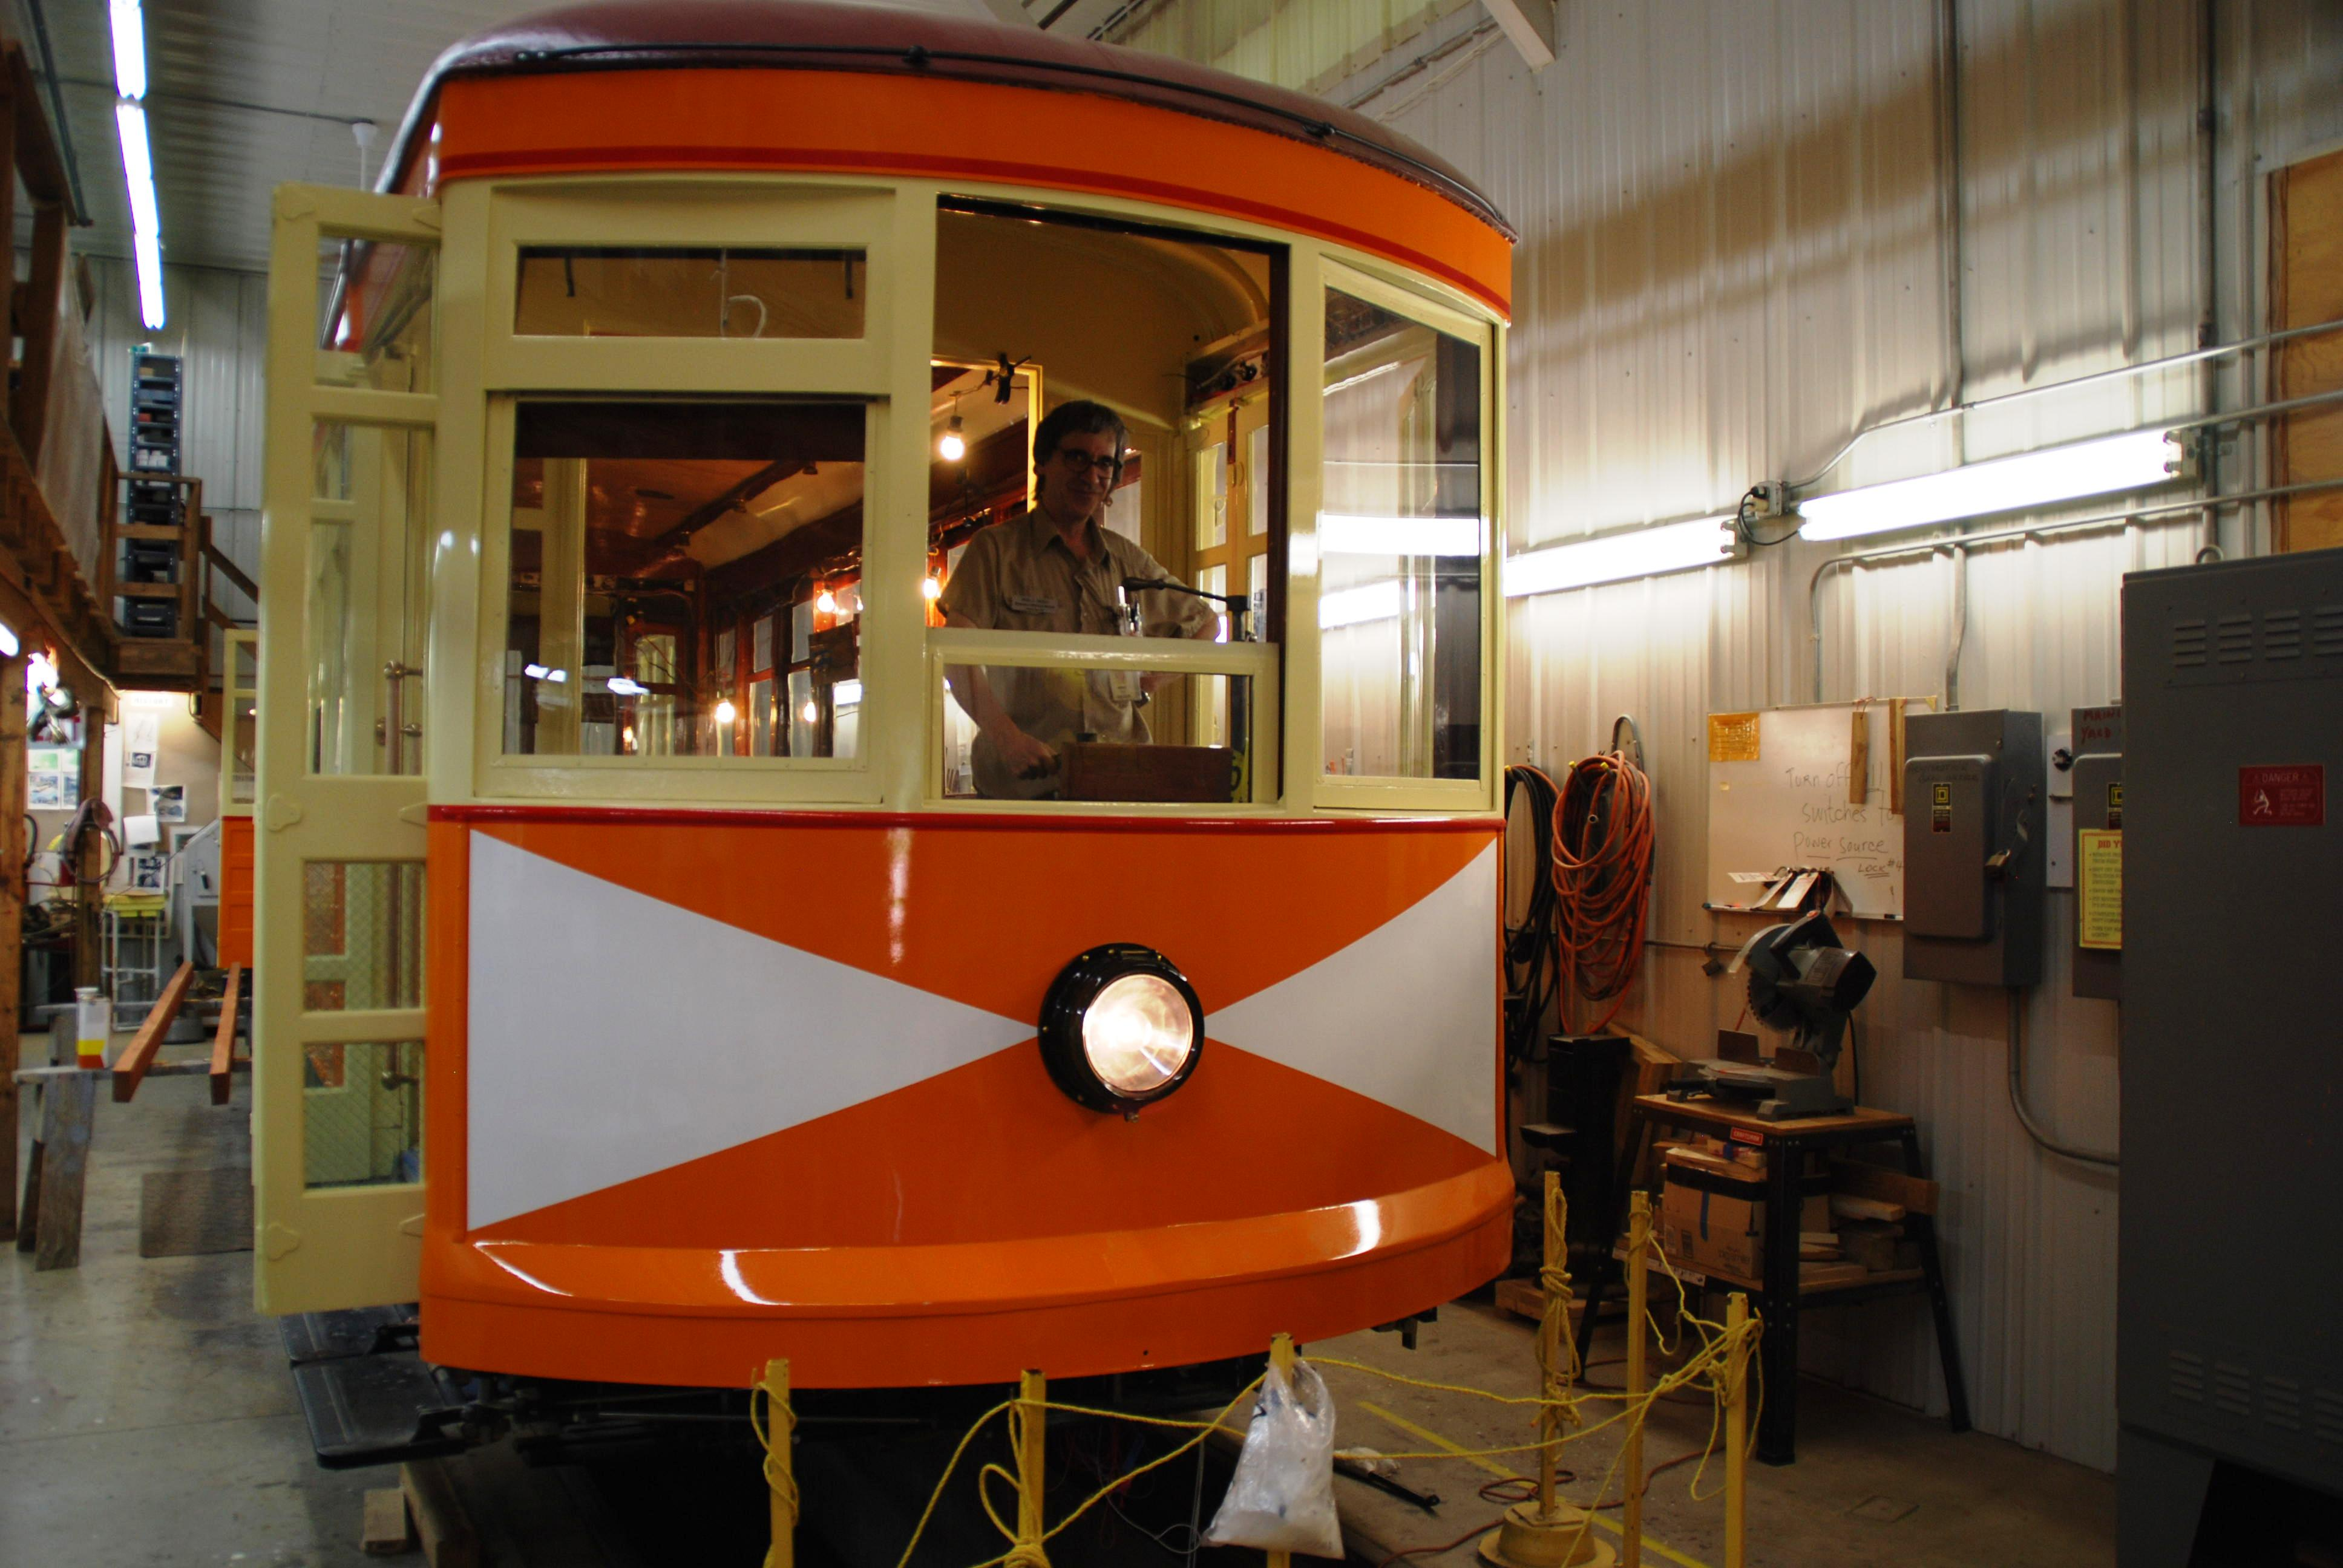 Signals Foreperson Mike Miller inside the Winona Streetcar No. 10 currently being restored in Excelsior.